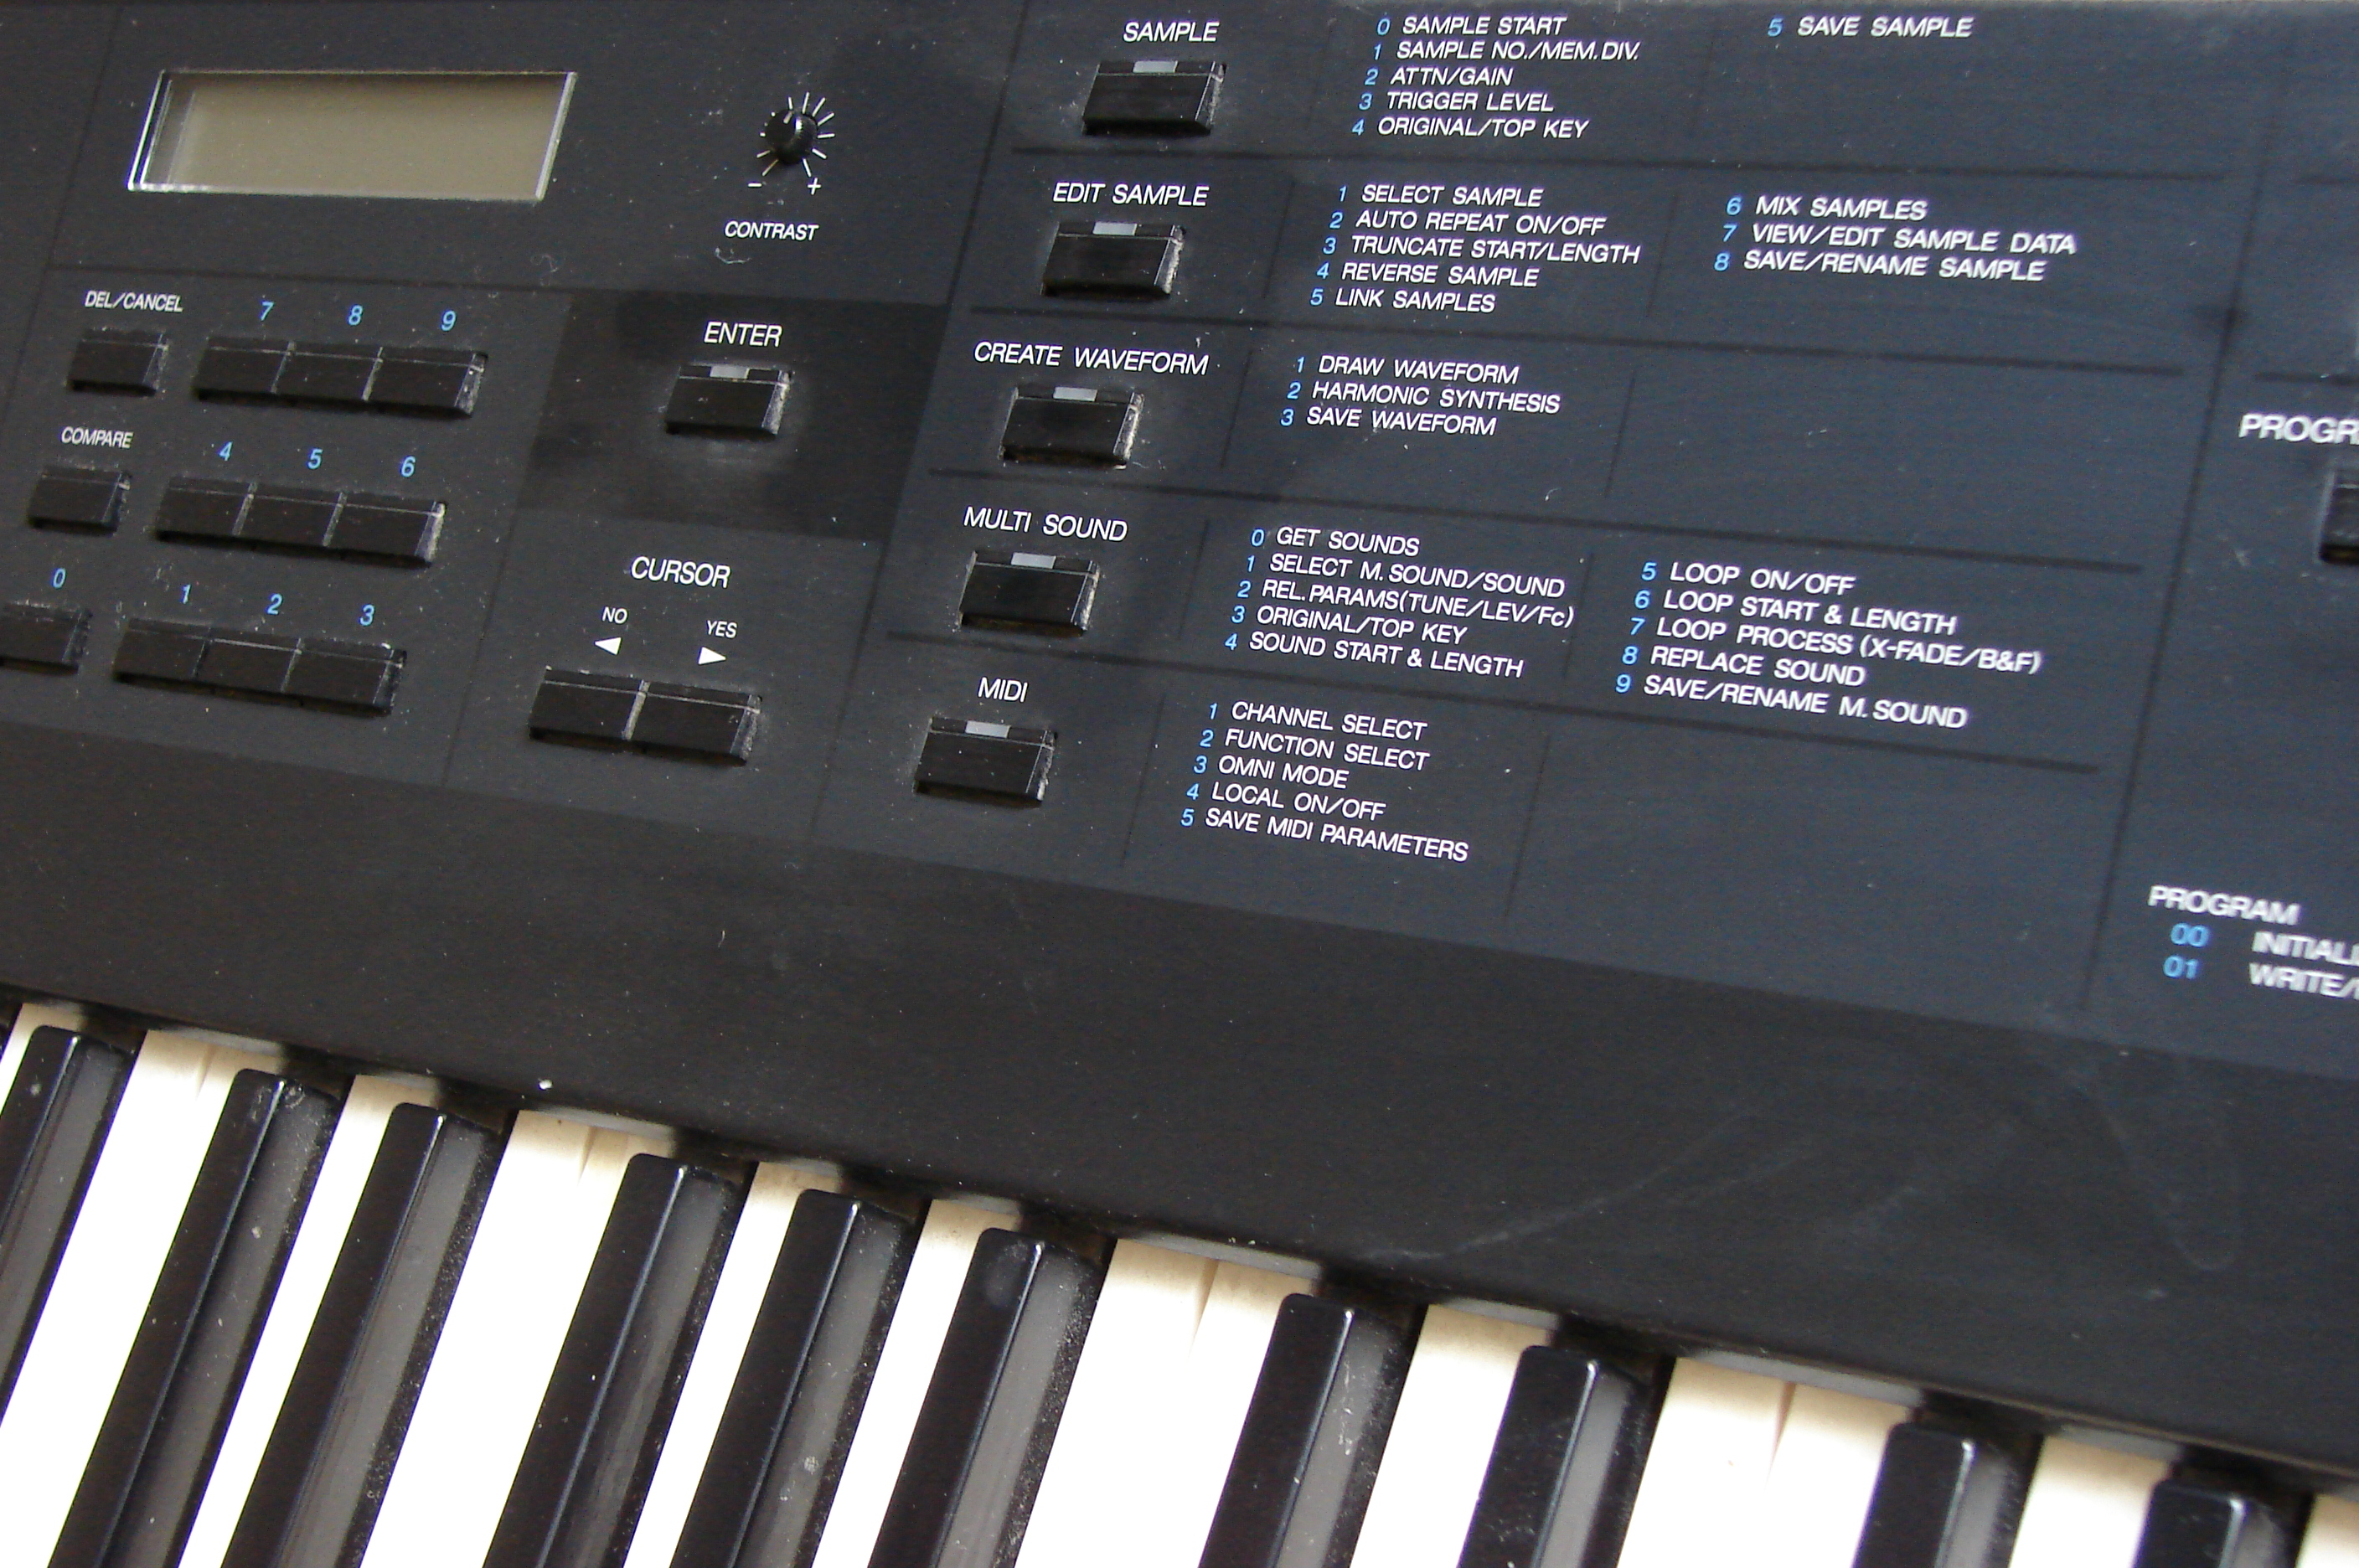 My old synthesizers - Korg DSS1